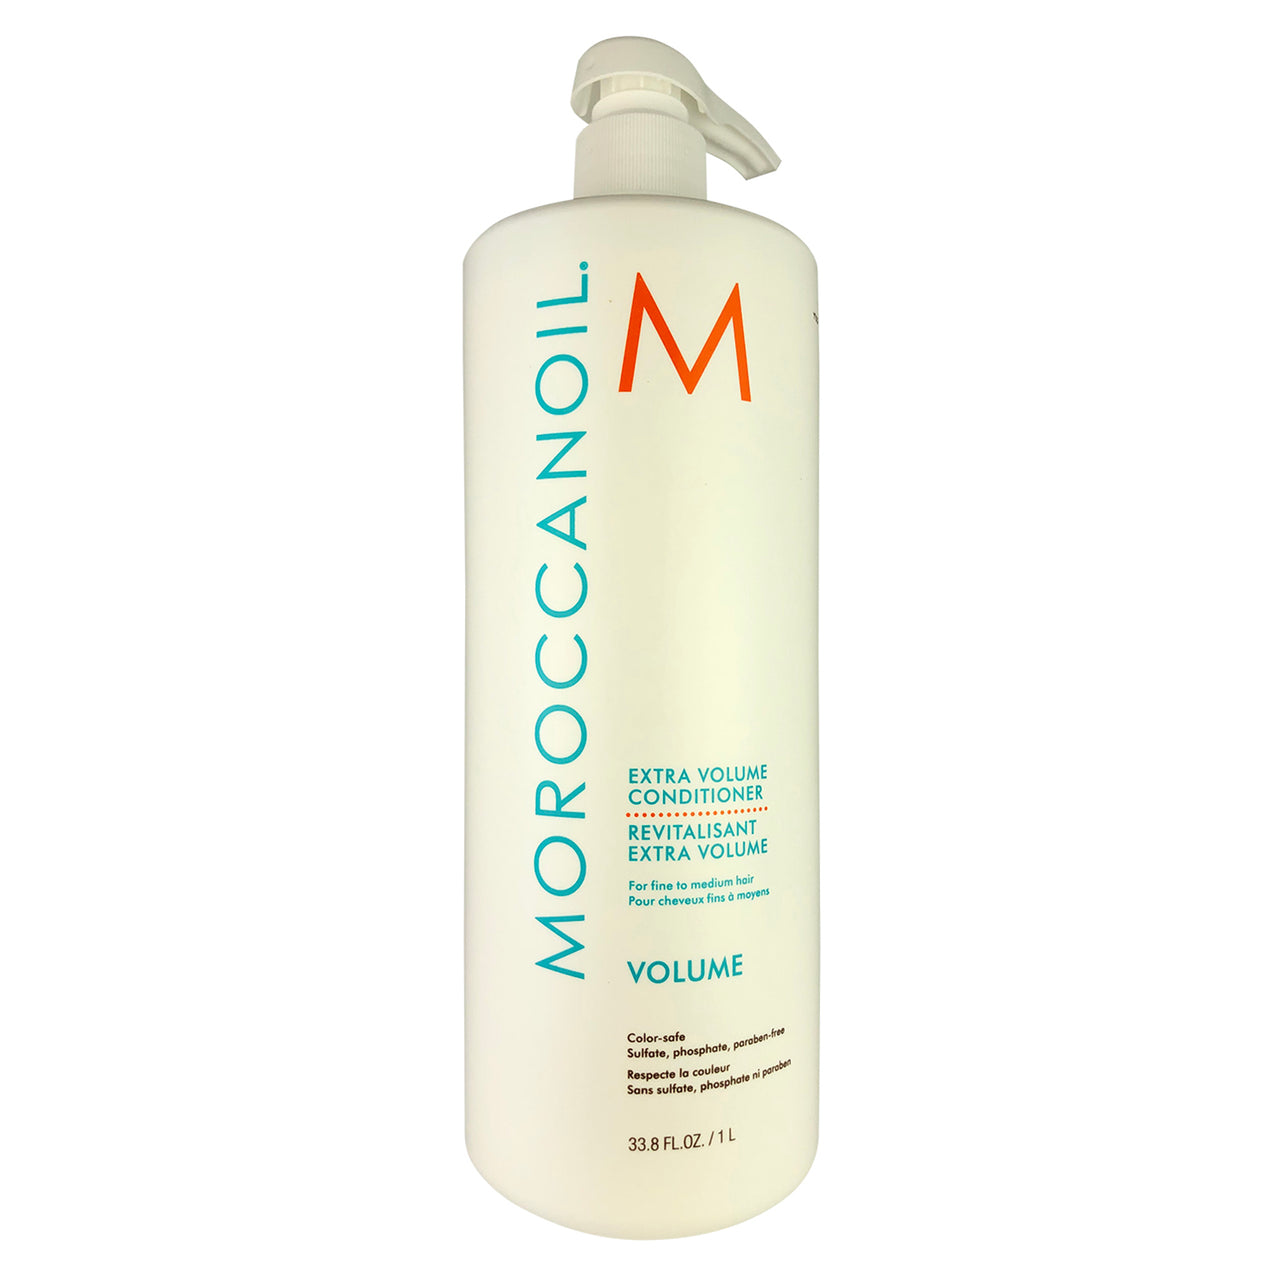 MOROCCANOIL Extra Volume Conditioner Liter 33.8 oz each For Fine to Medium Hair Color-Safe Parabens Sulfate & Phosphate Free